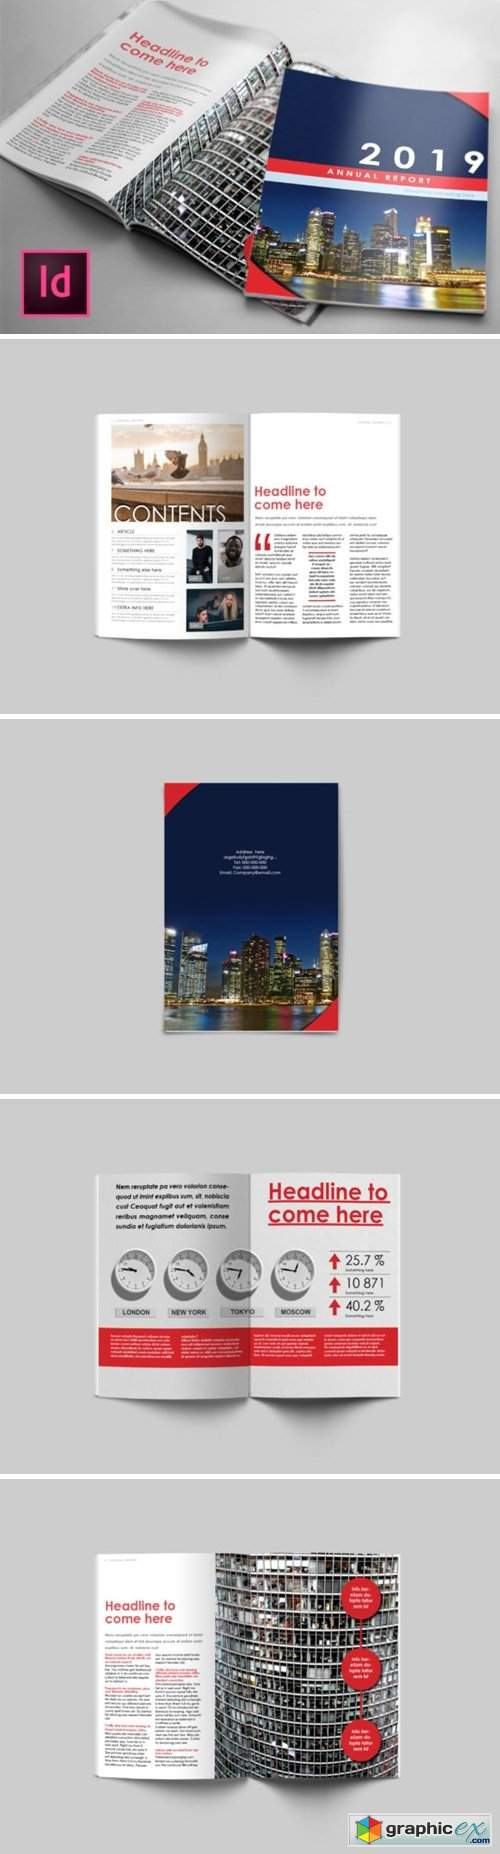 Business Annual Report Template 1594880